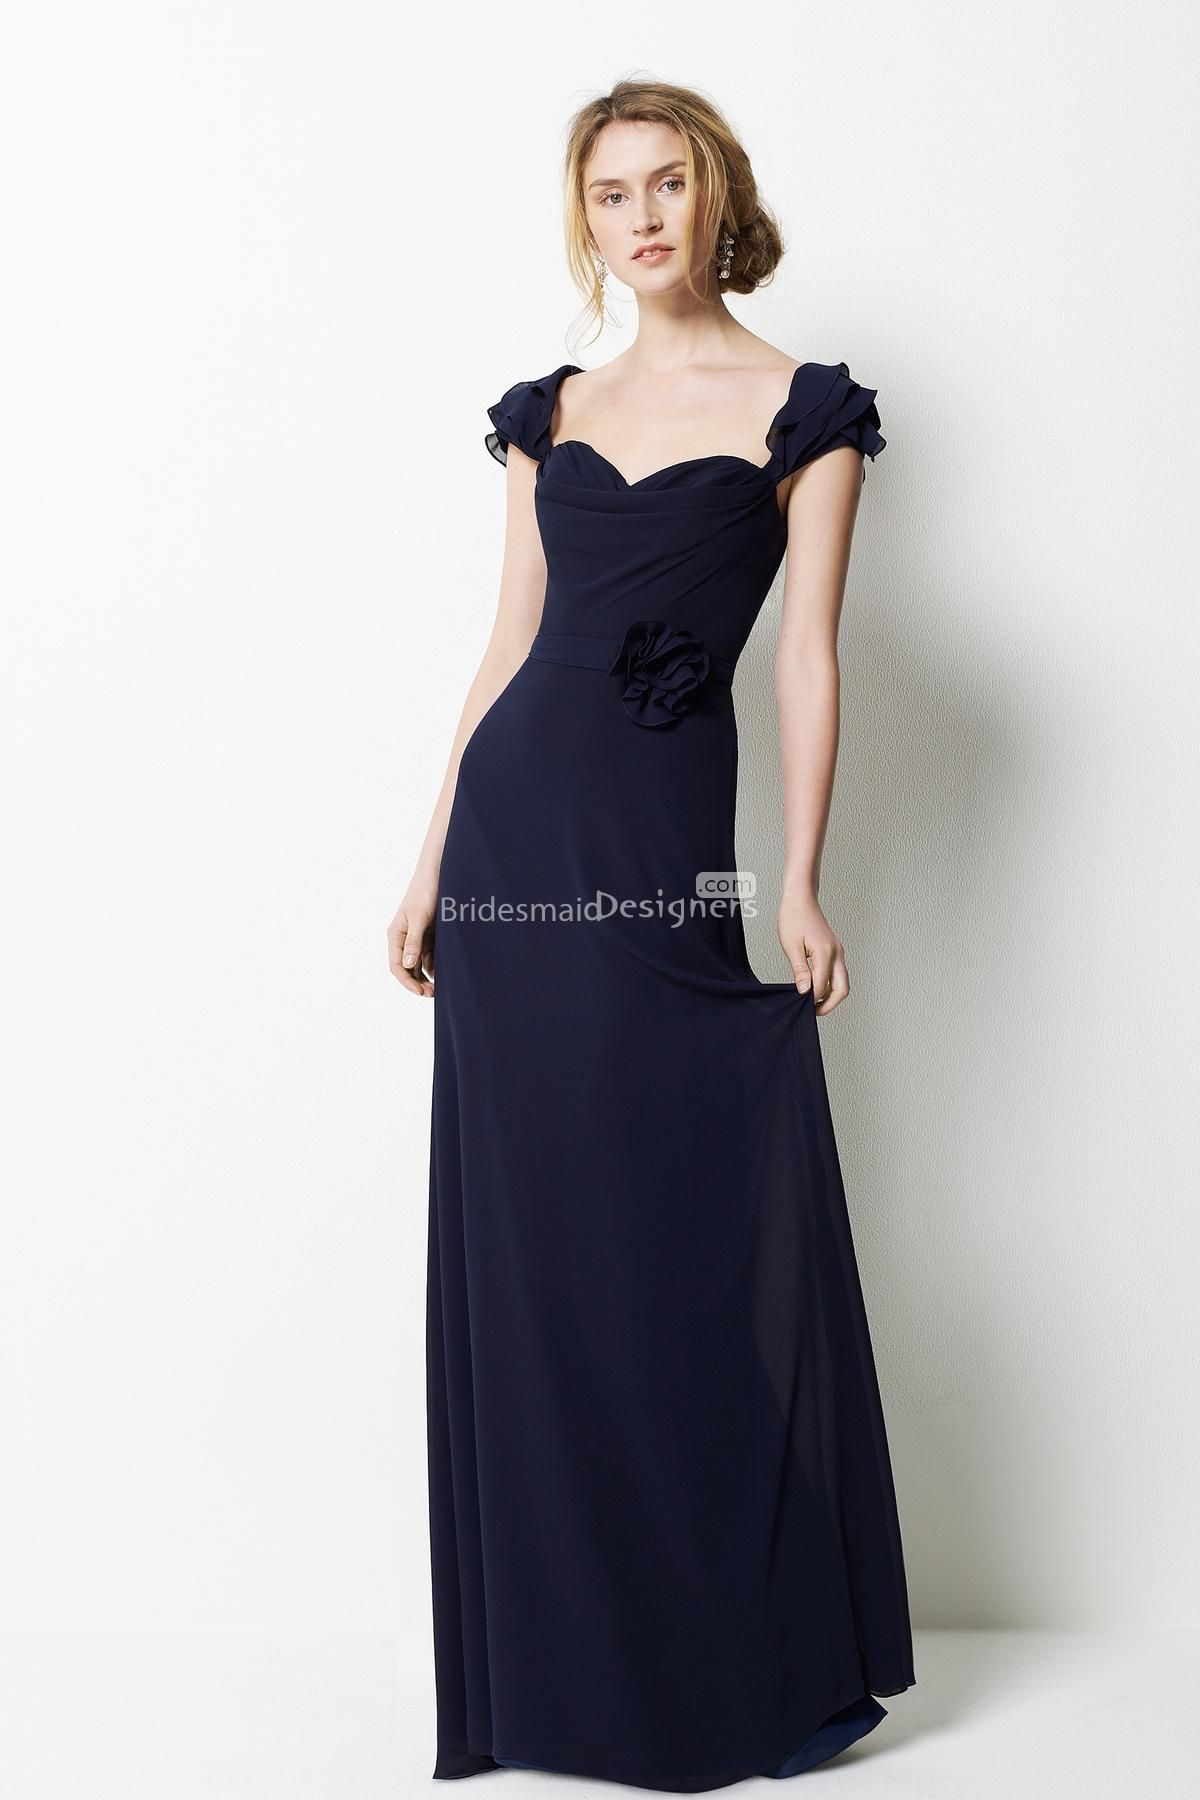 Cap sleeve navy knee length dress google search things to wear explore bridesmaid gowns bridesmaid ideas and more cap sleeve navy knee length dress ombrellifo Image collections